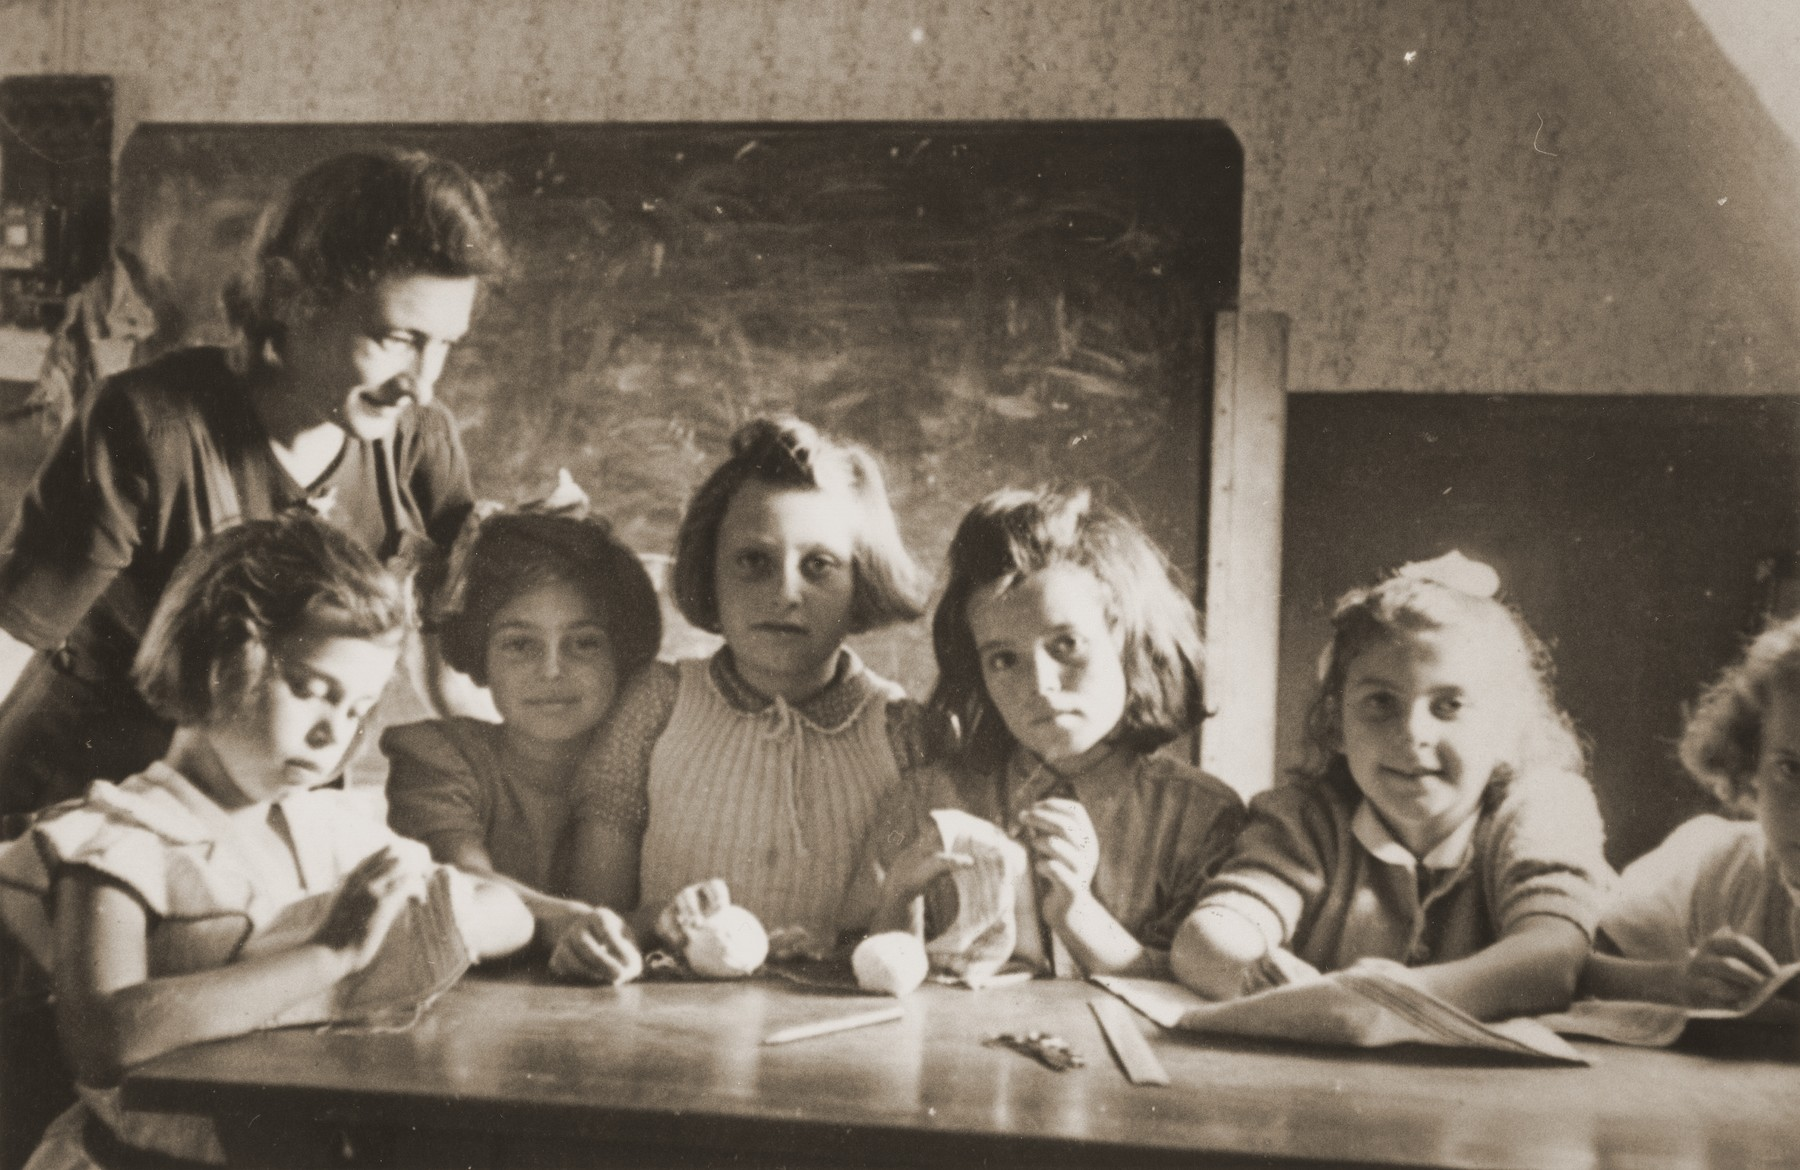 Girls learn to sew in a classroom at the Neu Freimann displaced persons camp.  Pictured in the center is Ida (Judith) Stern,  Also pictured are probably Rita Pazenski (far right) and Shulamis (or Shulamit, 4th from right)